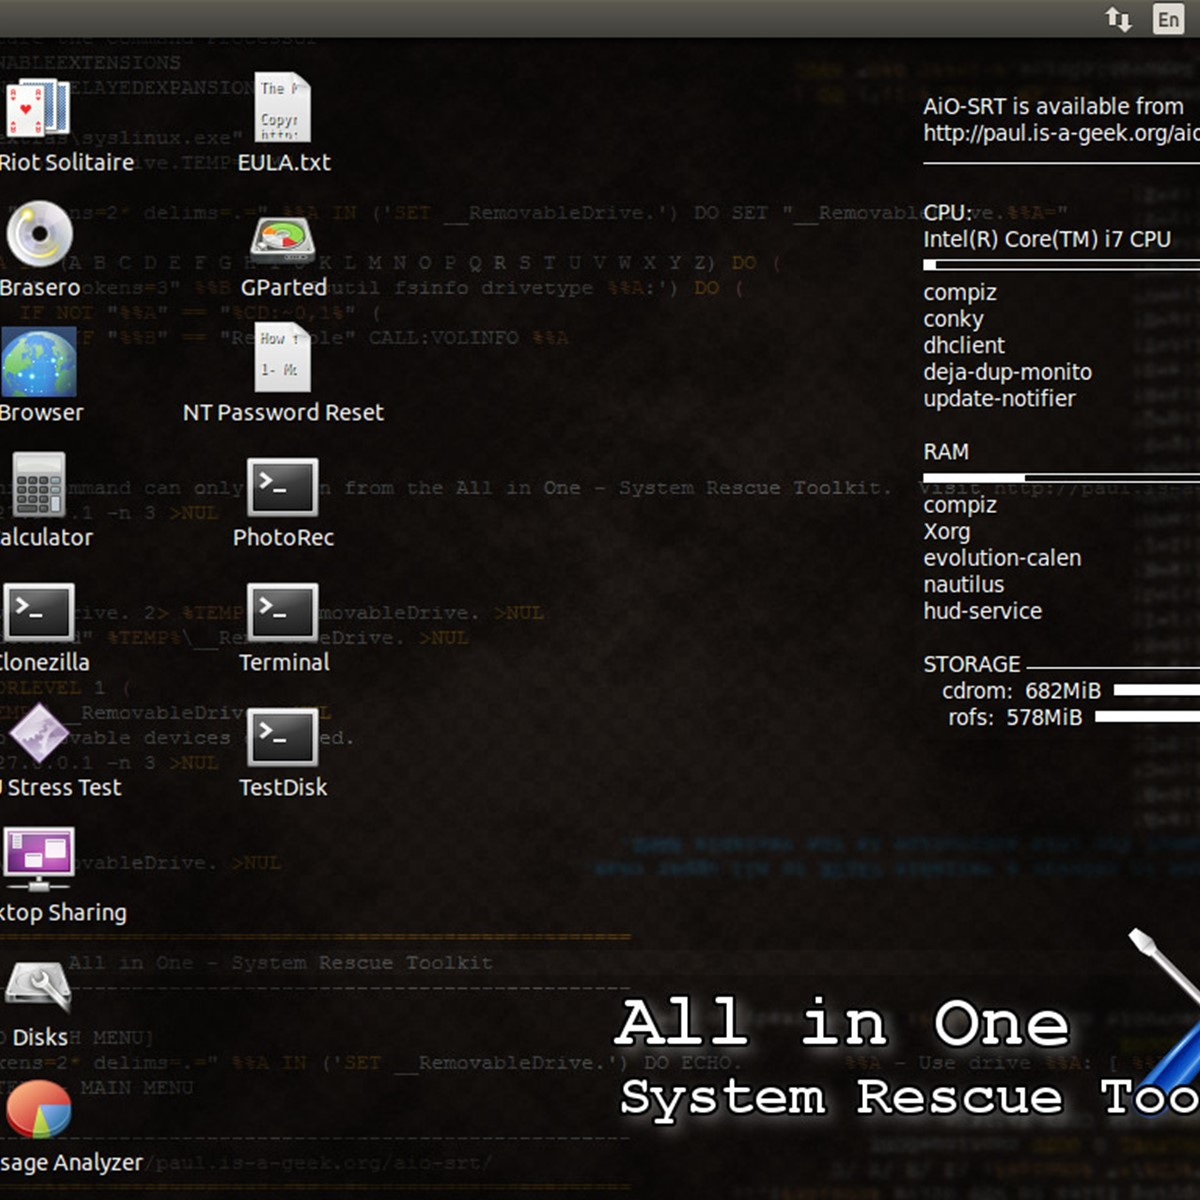 All in One – System Rescue Toolkit Alternatives and Similar